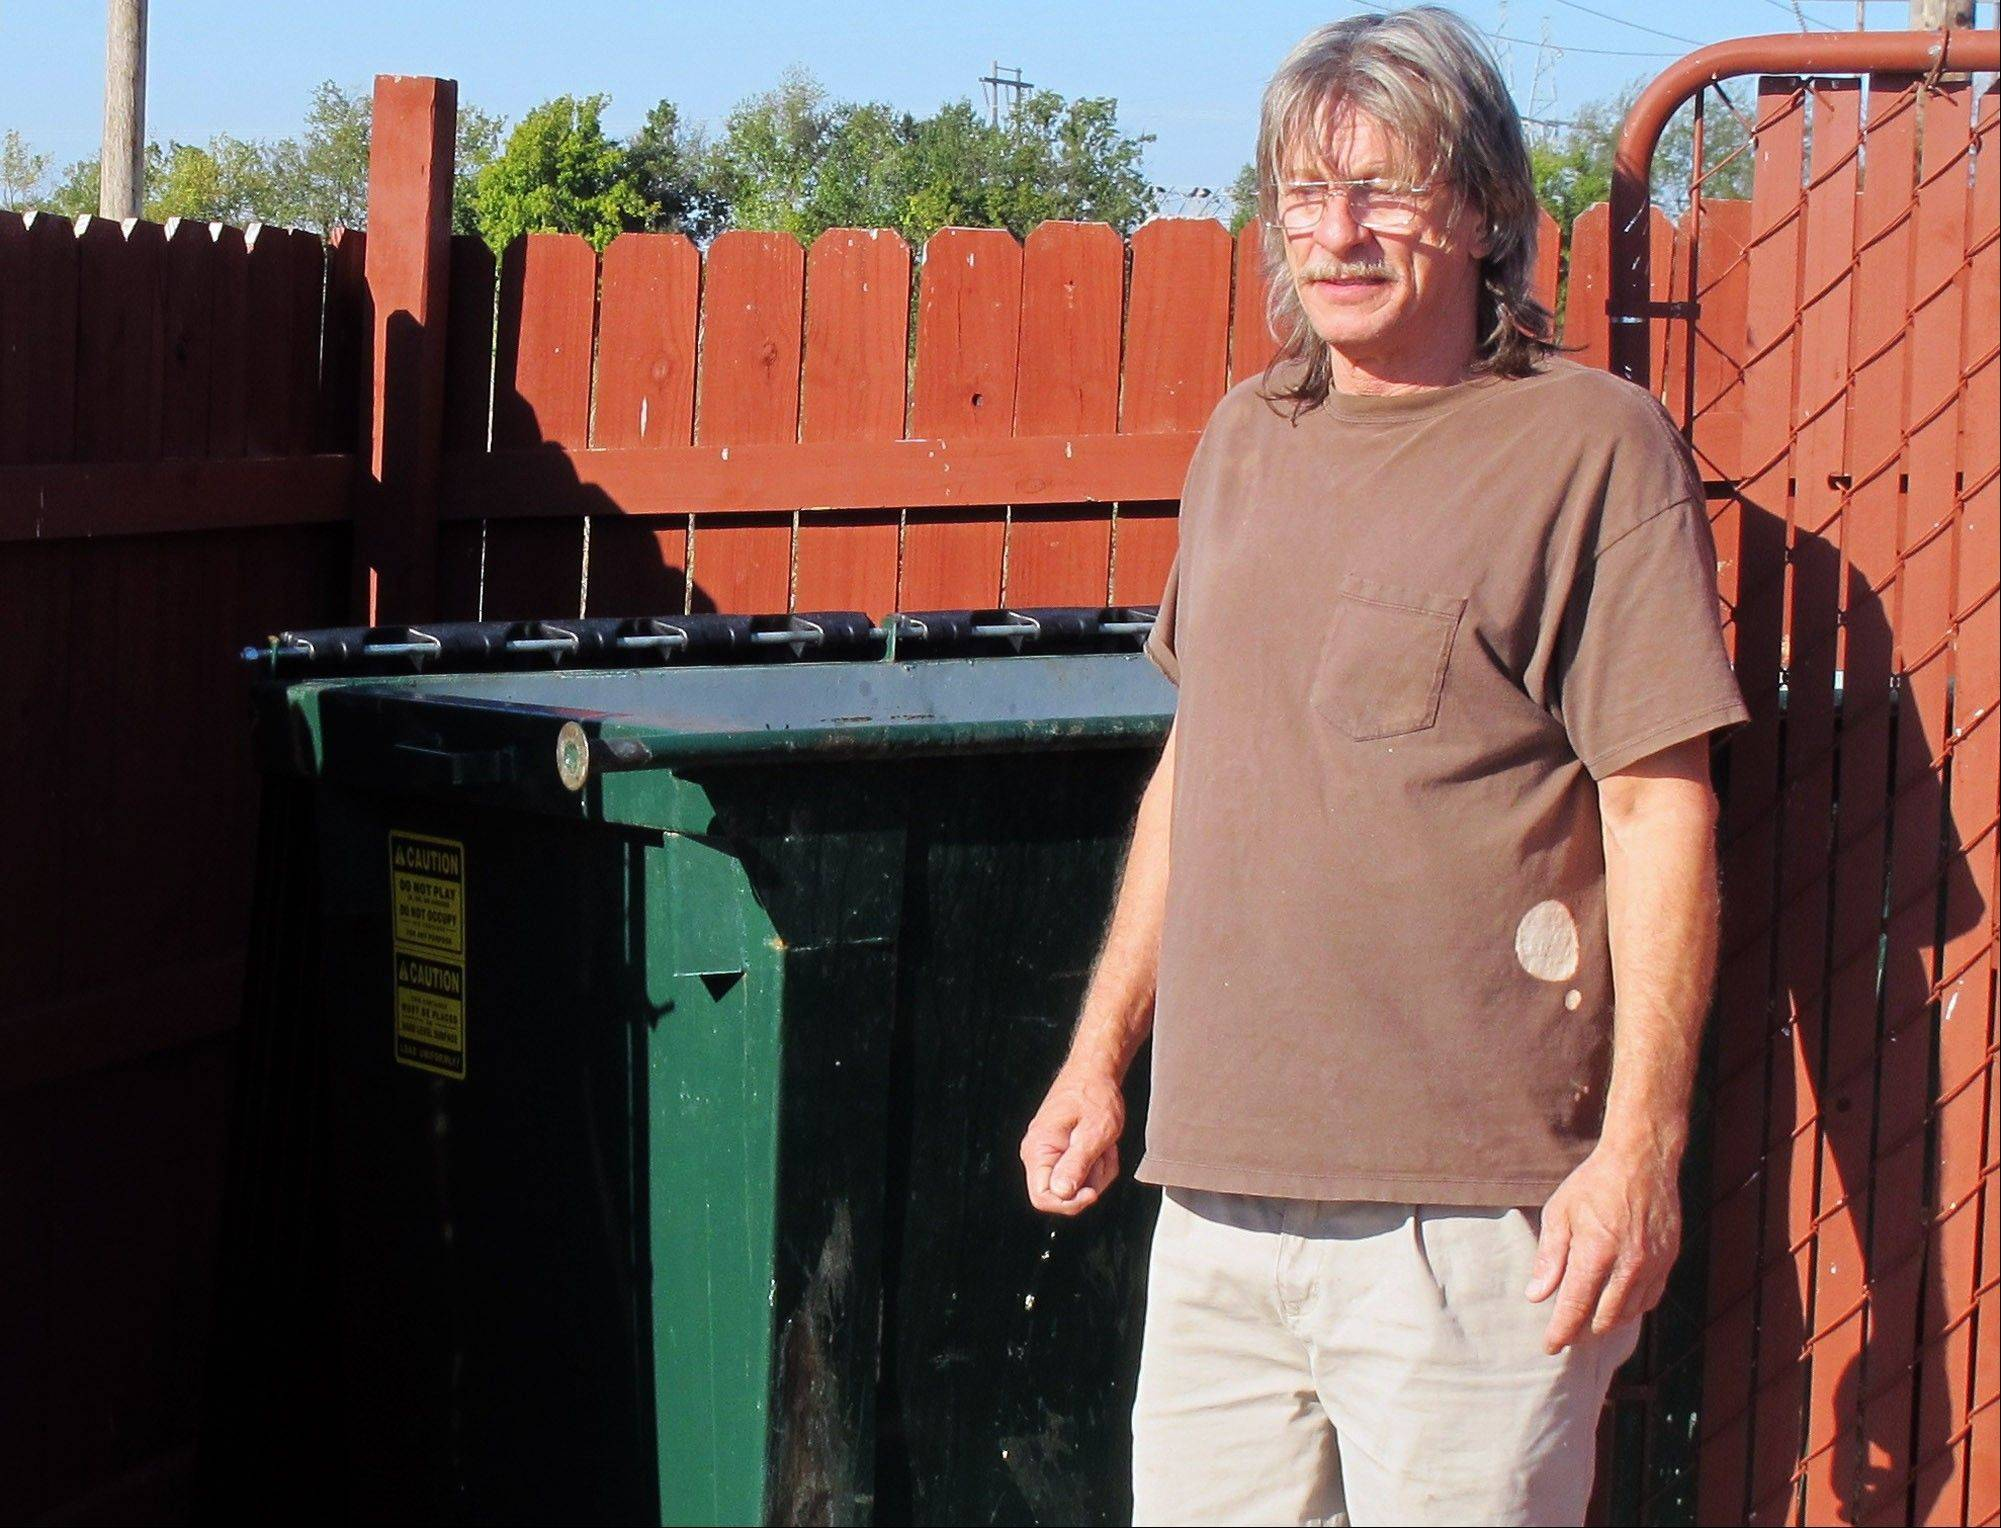 Ralph Smith, a maintenance worker at the Legacy Inn & Suites, stands in front of the trash bin where he found discarded bomb-making materials on Tuesday, Oct. 9, 2012, in Miami, Okla. Smith reported the find to authorities last week, and they later arrested Gregory Arthur Weiler II for possession of an explosive device.